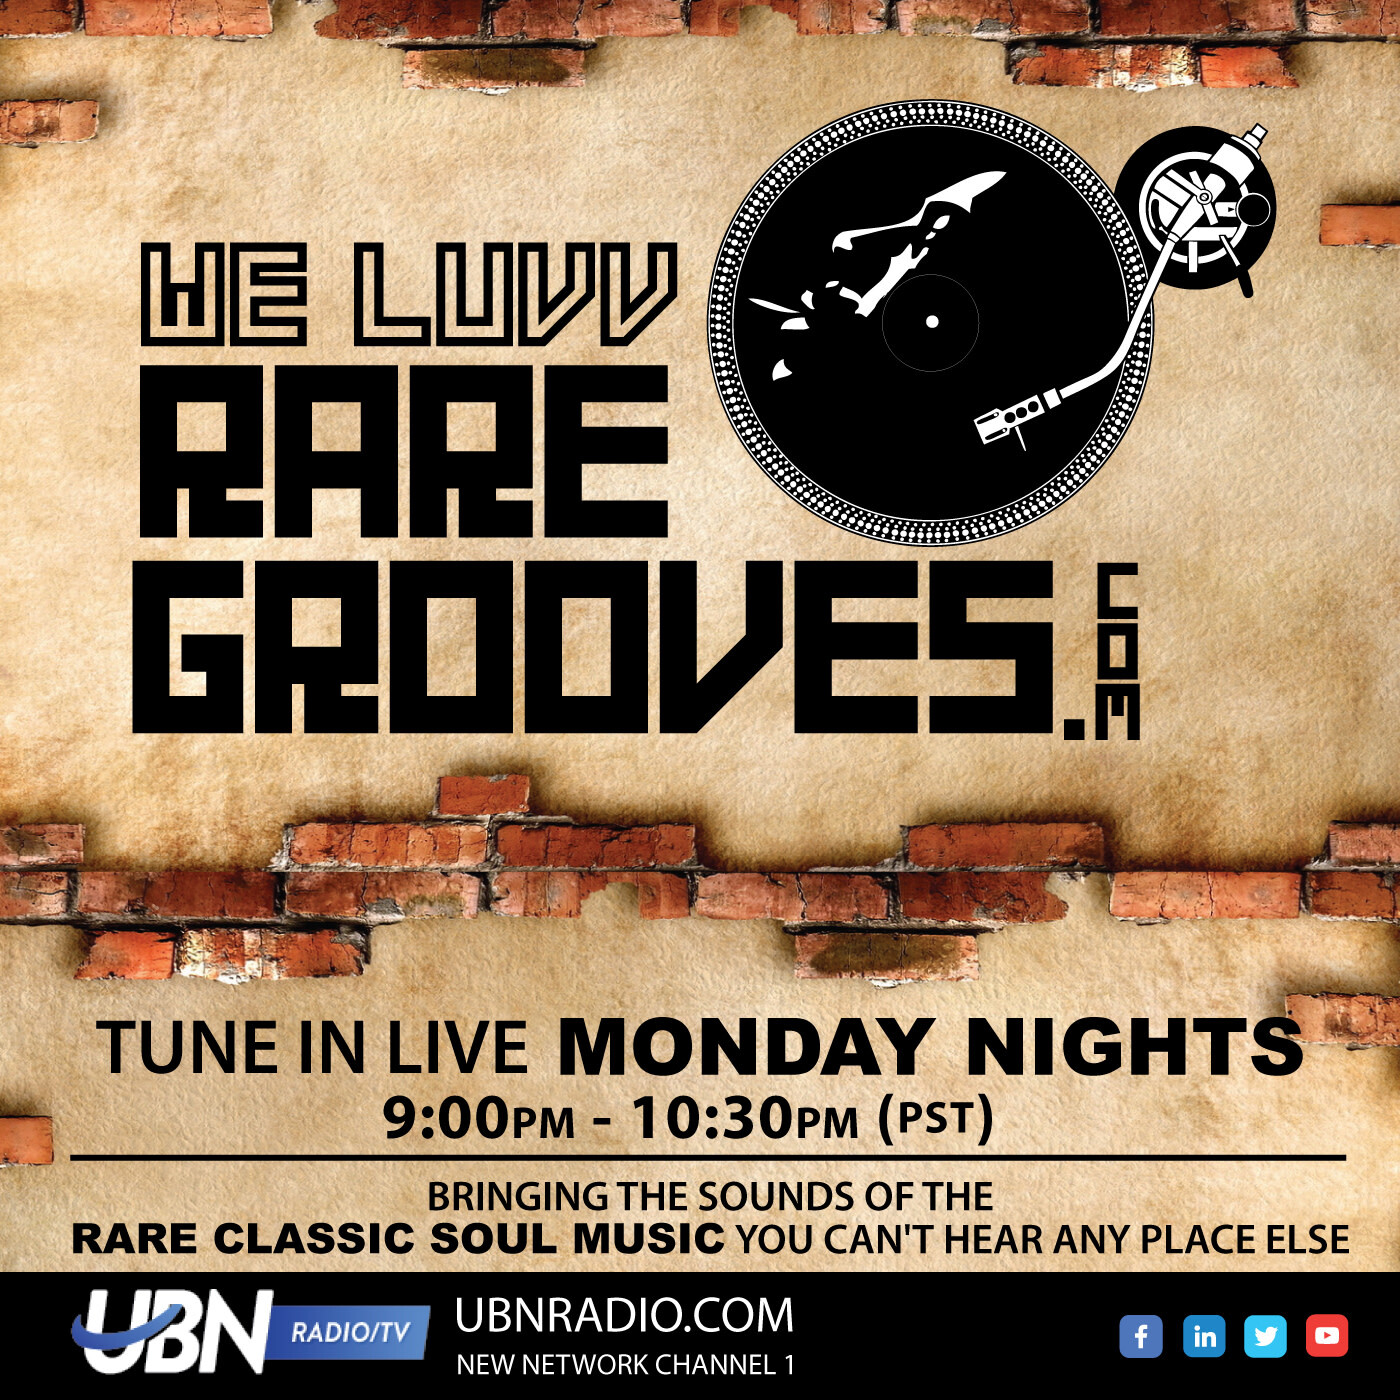 We Luv Rare Grooves - October 28, 2019